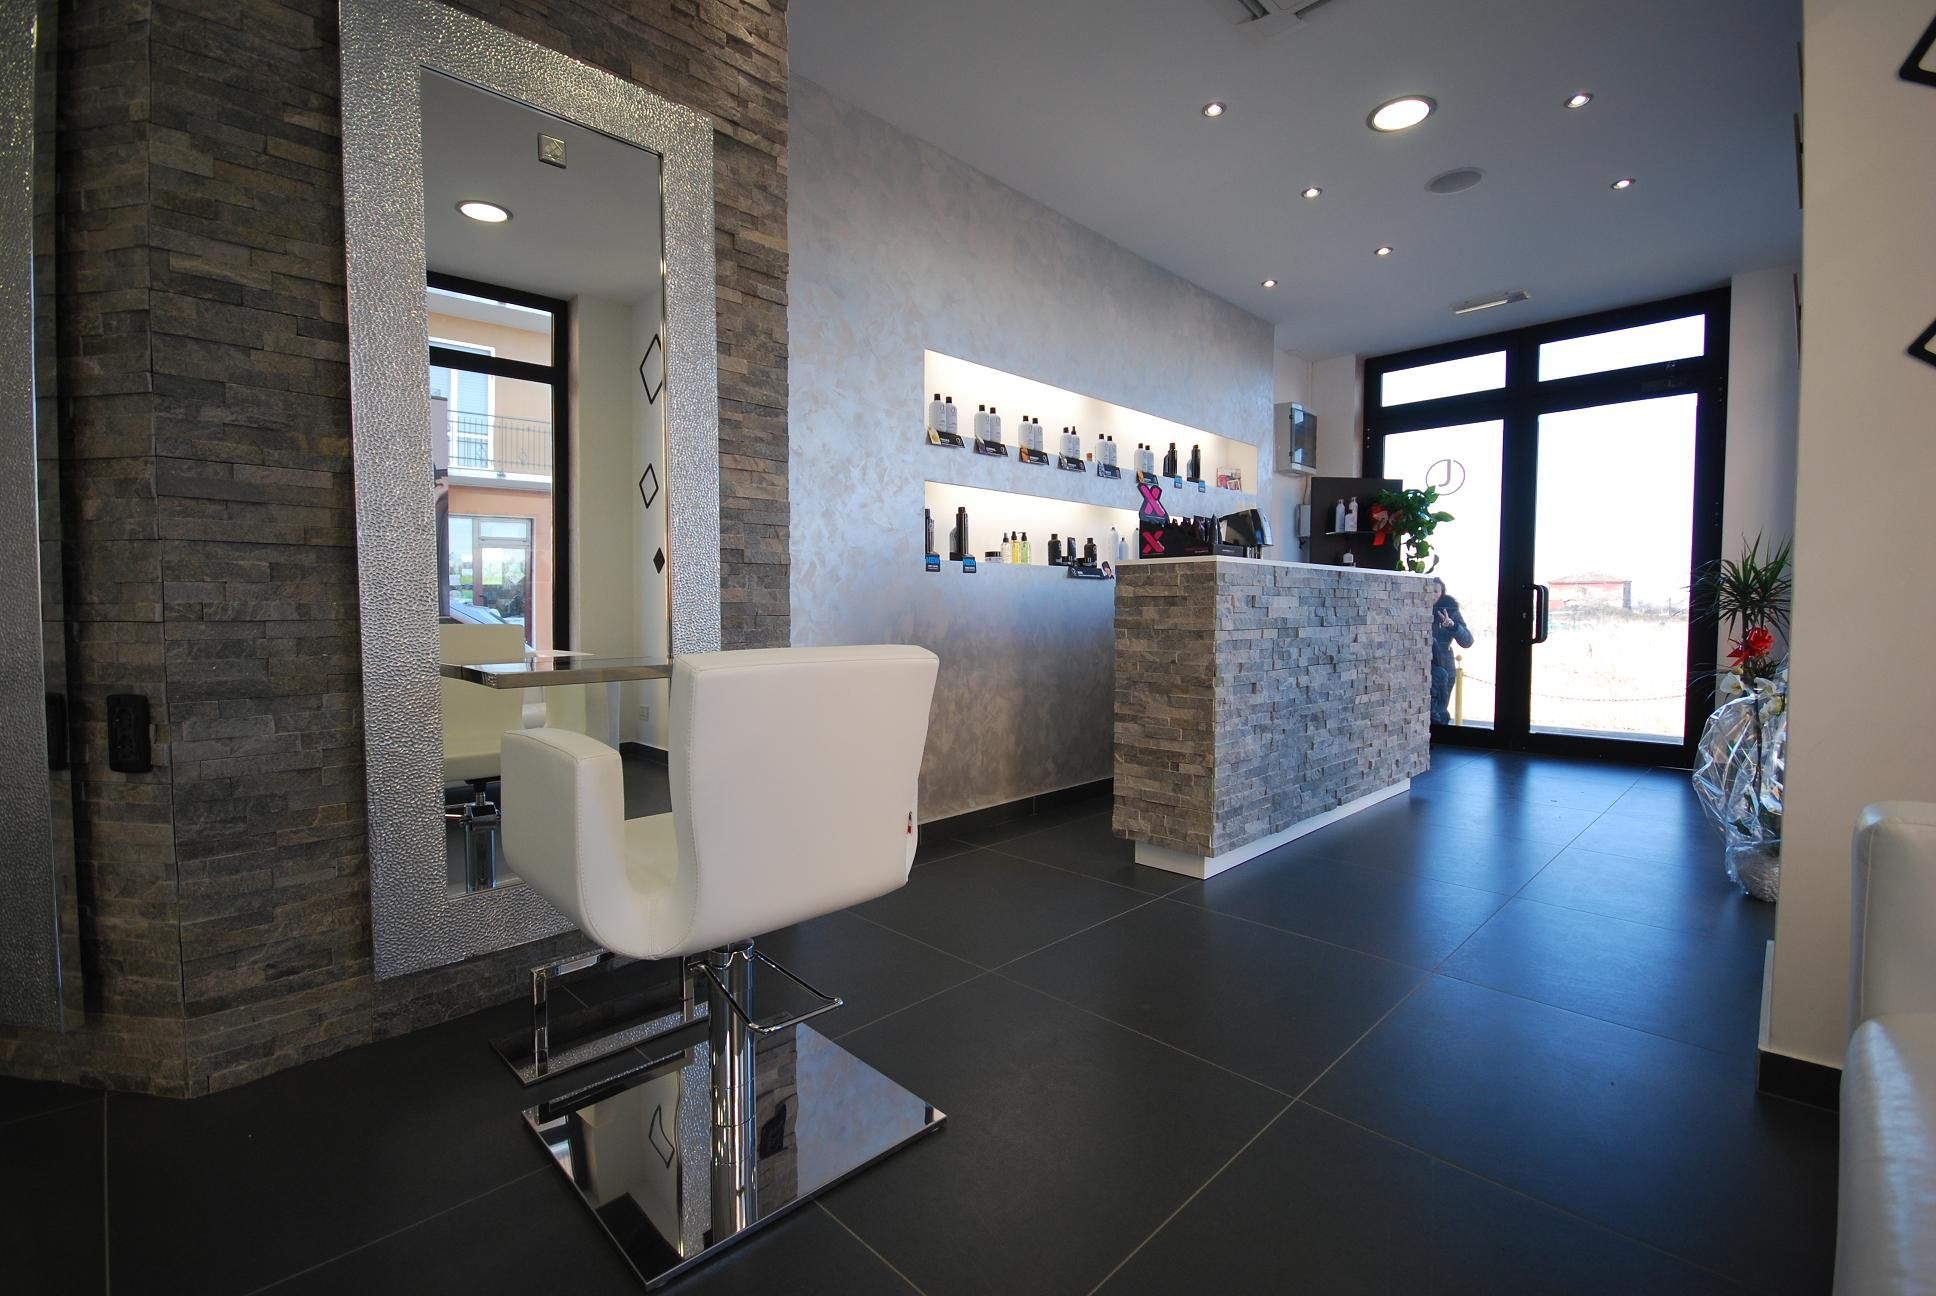 Nelson mobilier hair salon furniture made in france - Nail salon interior design photos ...